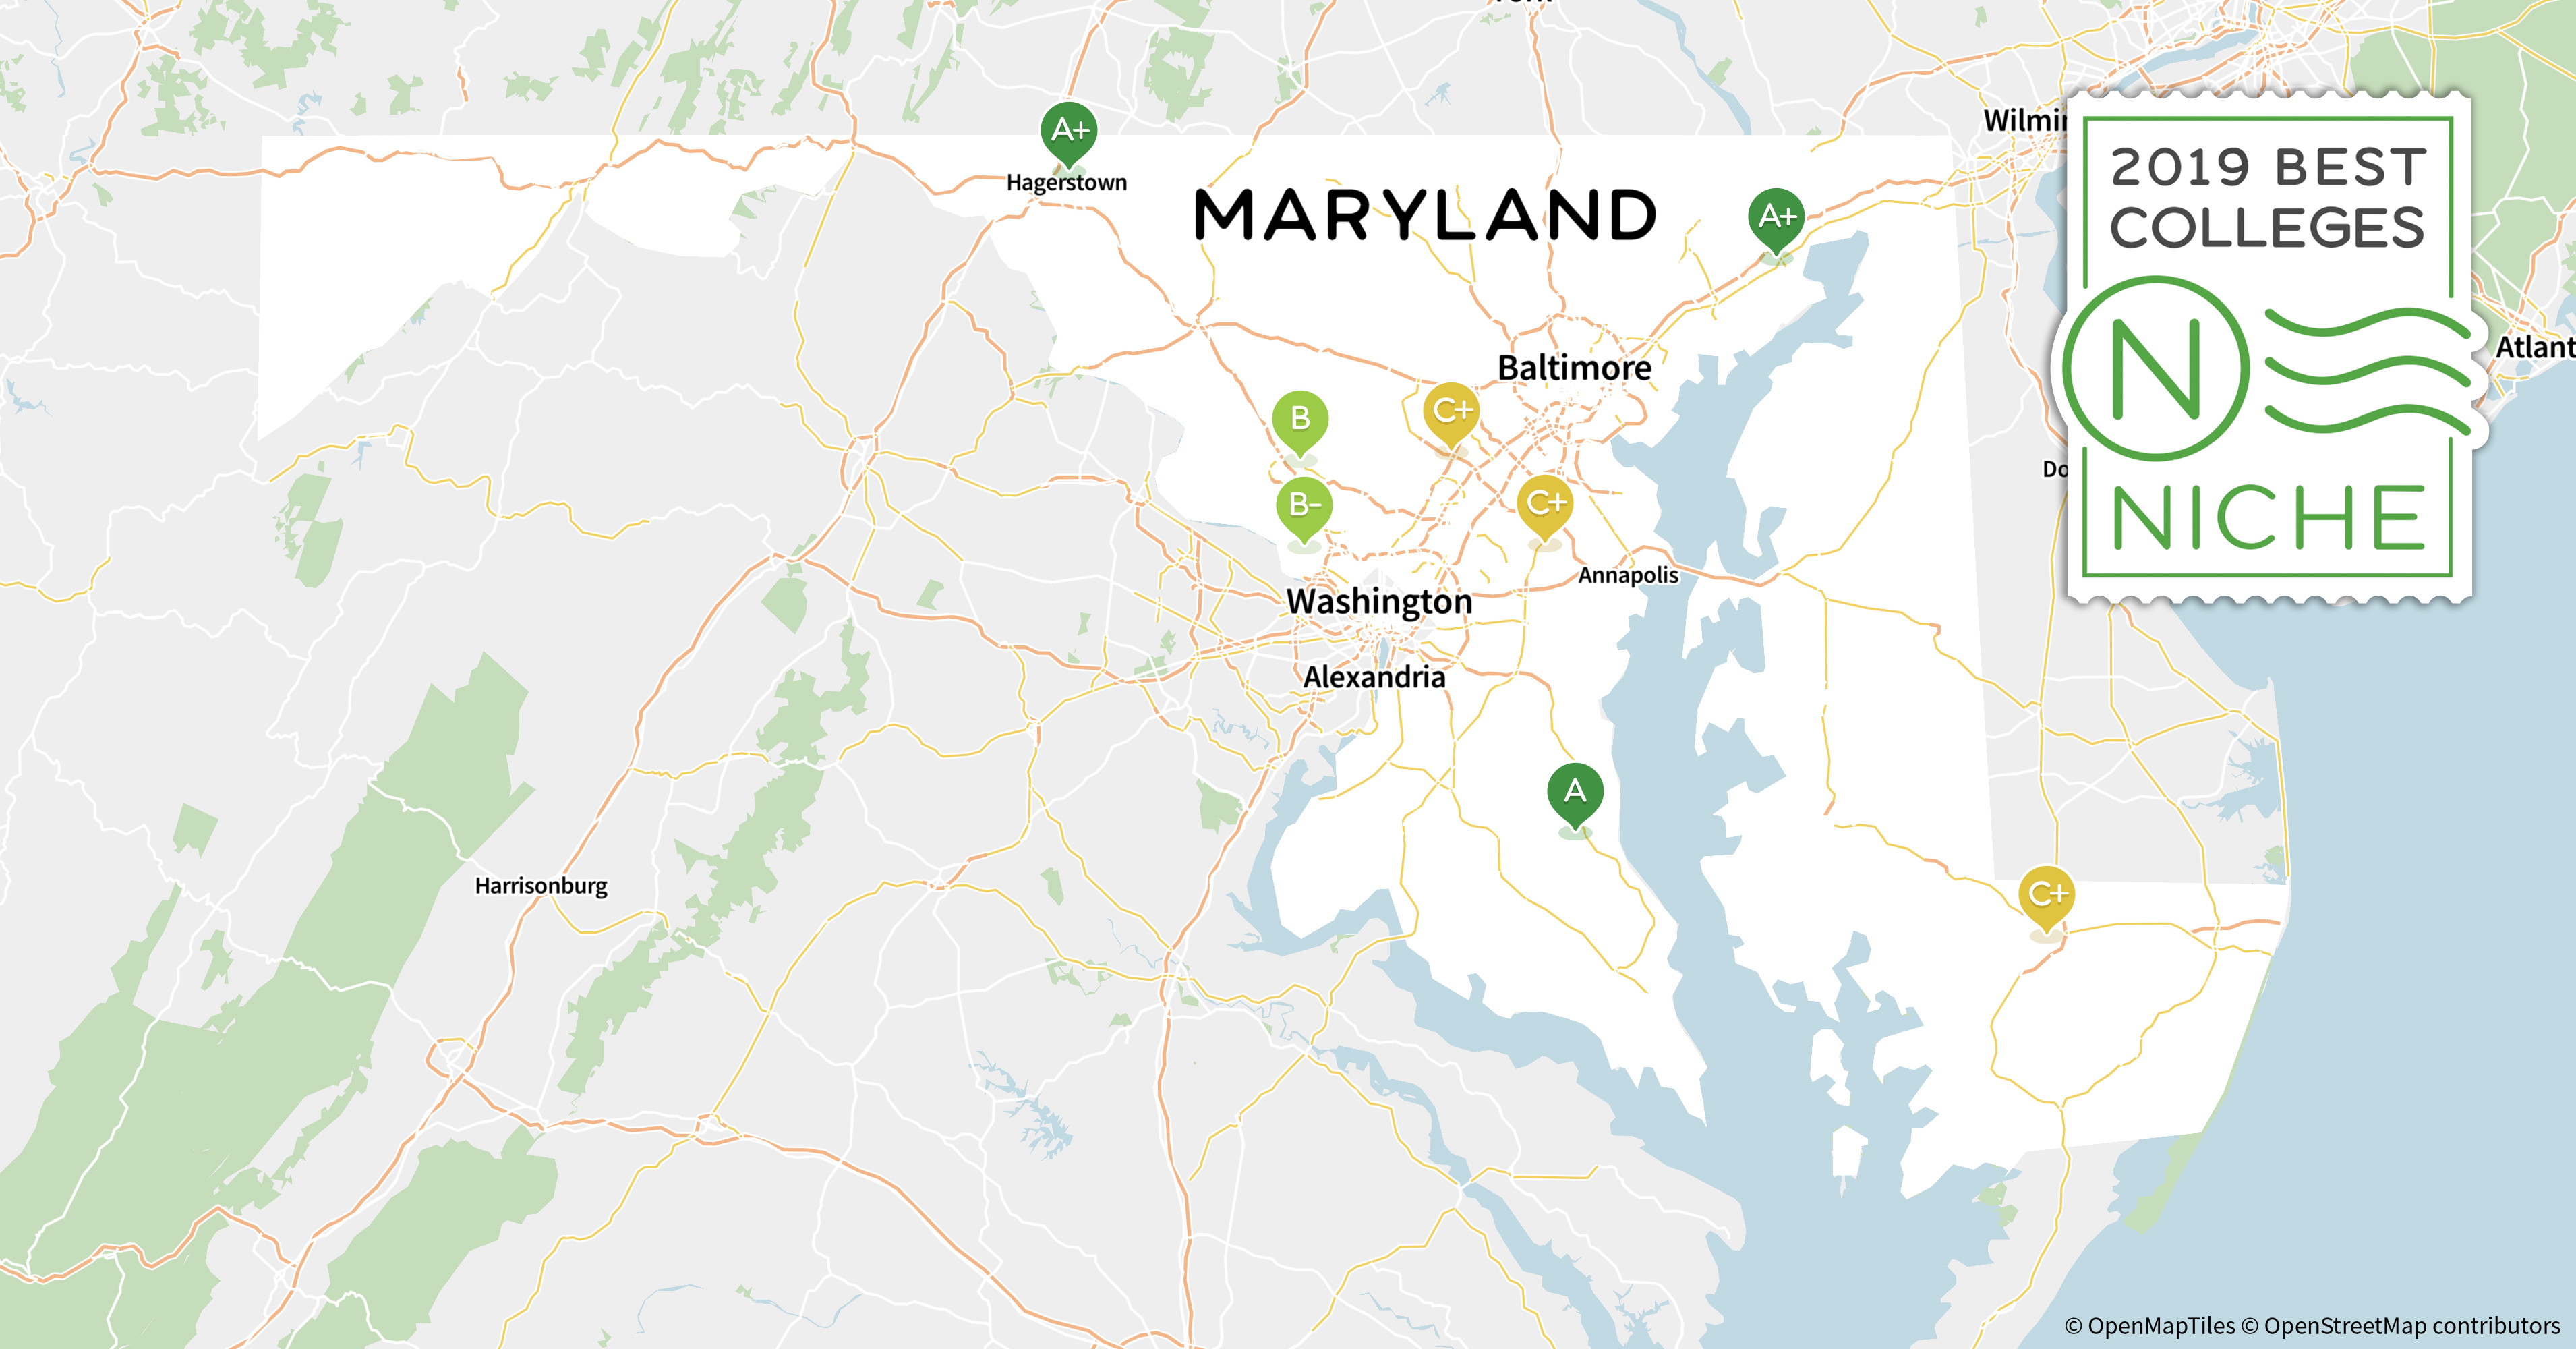 colleges in maryland map 2020 Top Graduate Programs In Maryland Niche colleges in maryland map